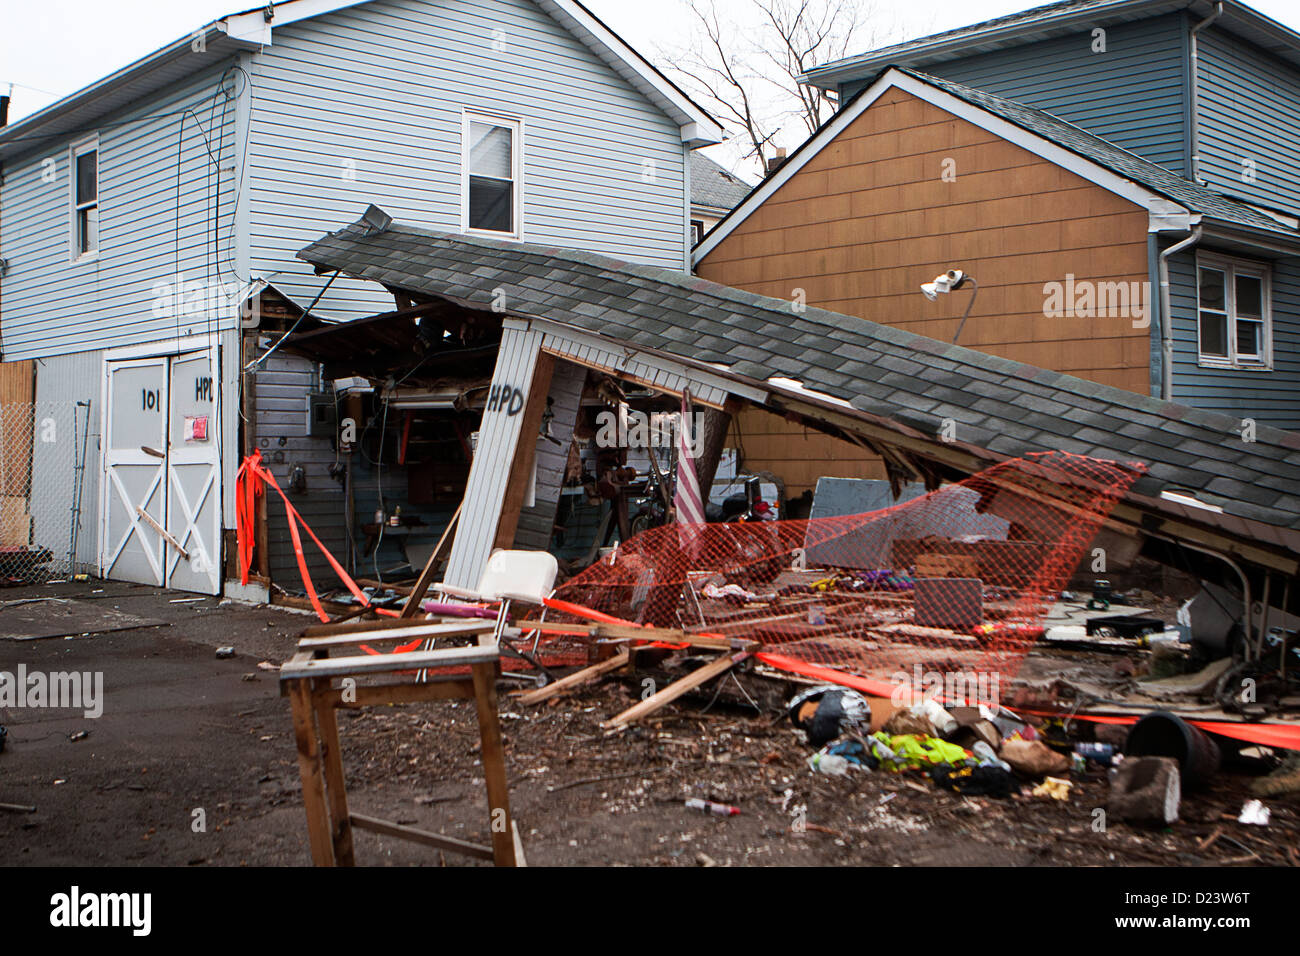 part of a house totaled after Hurricane Sandy - Stock Image